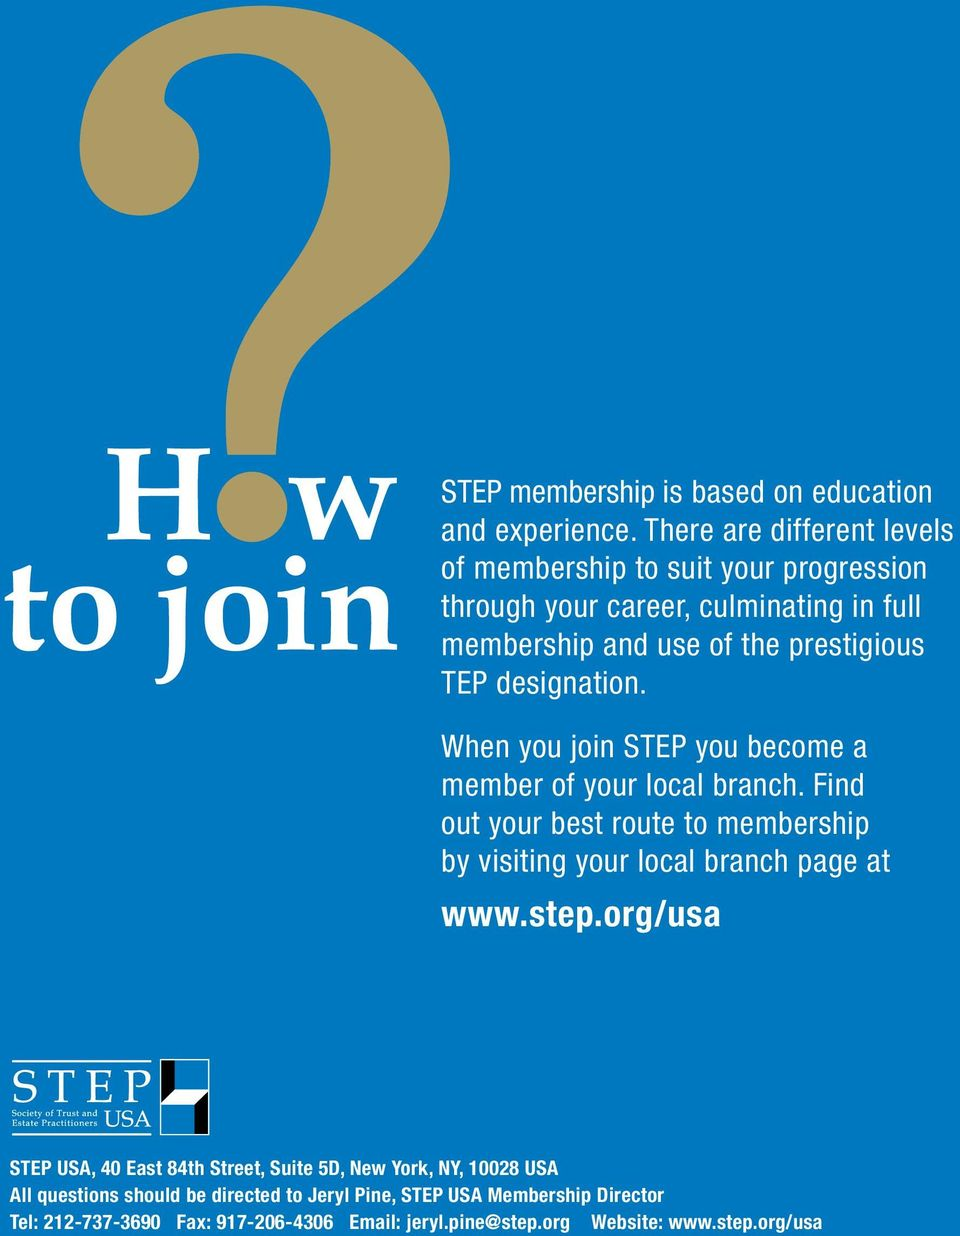 designation. When you join STEP you become a member of your local branch.